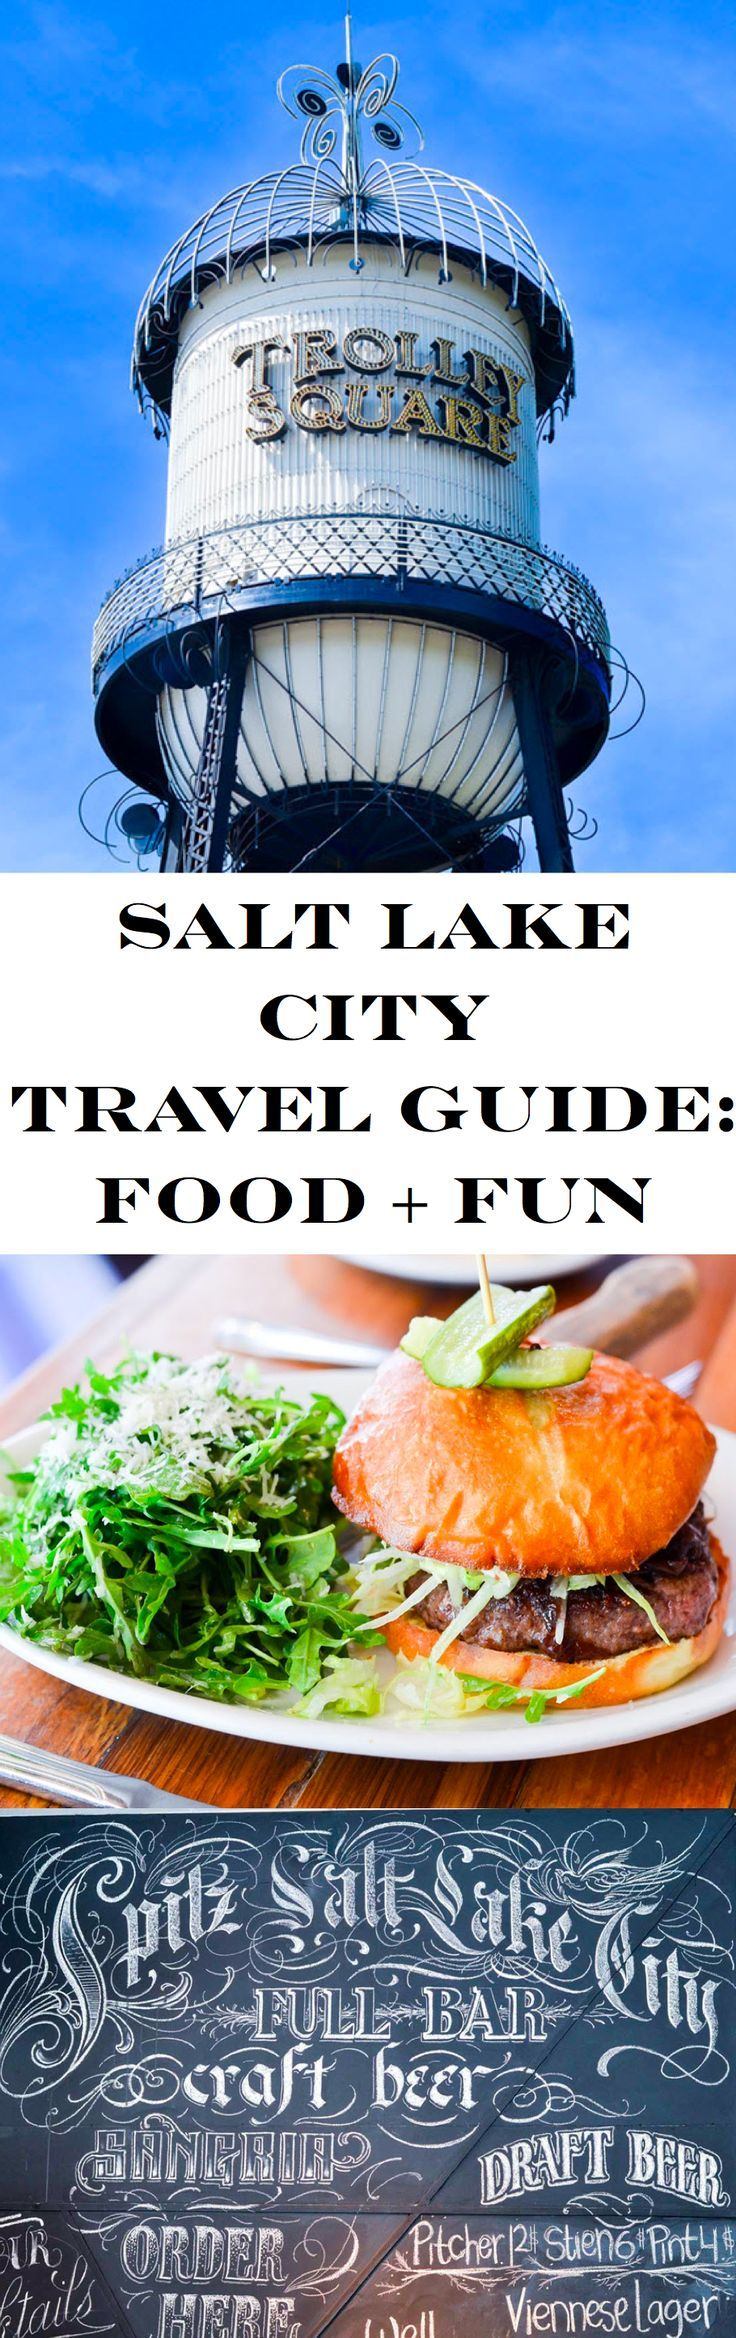 1 Day in Salt Lake City, Utah. What to do and where to eat, including coffee shops, breweries, and local favorites for delicious food! You Salt Lake City (SLC) Travel Guide + Things to Do!